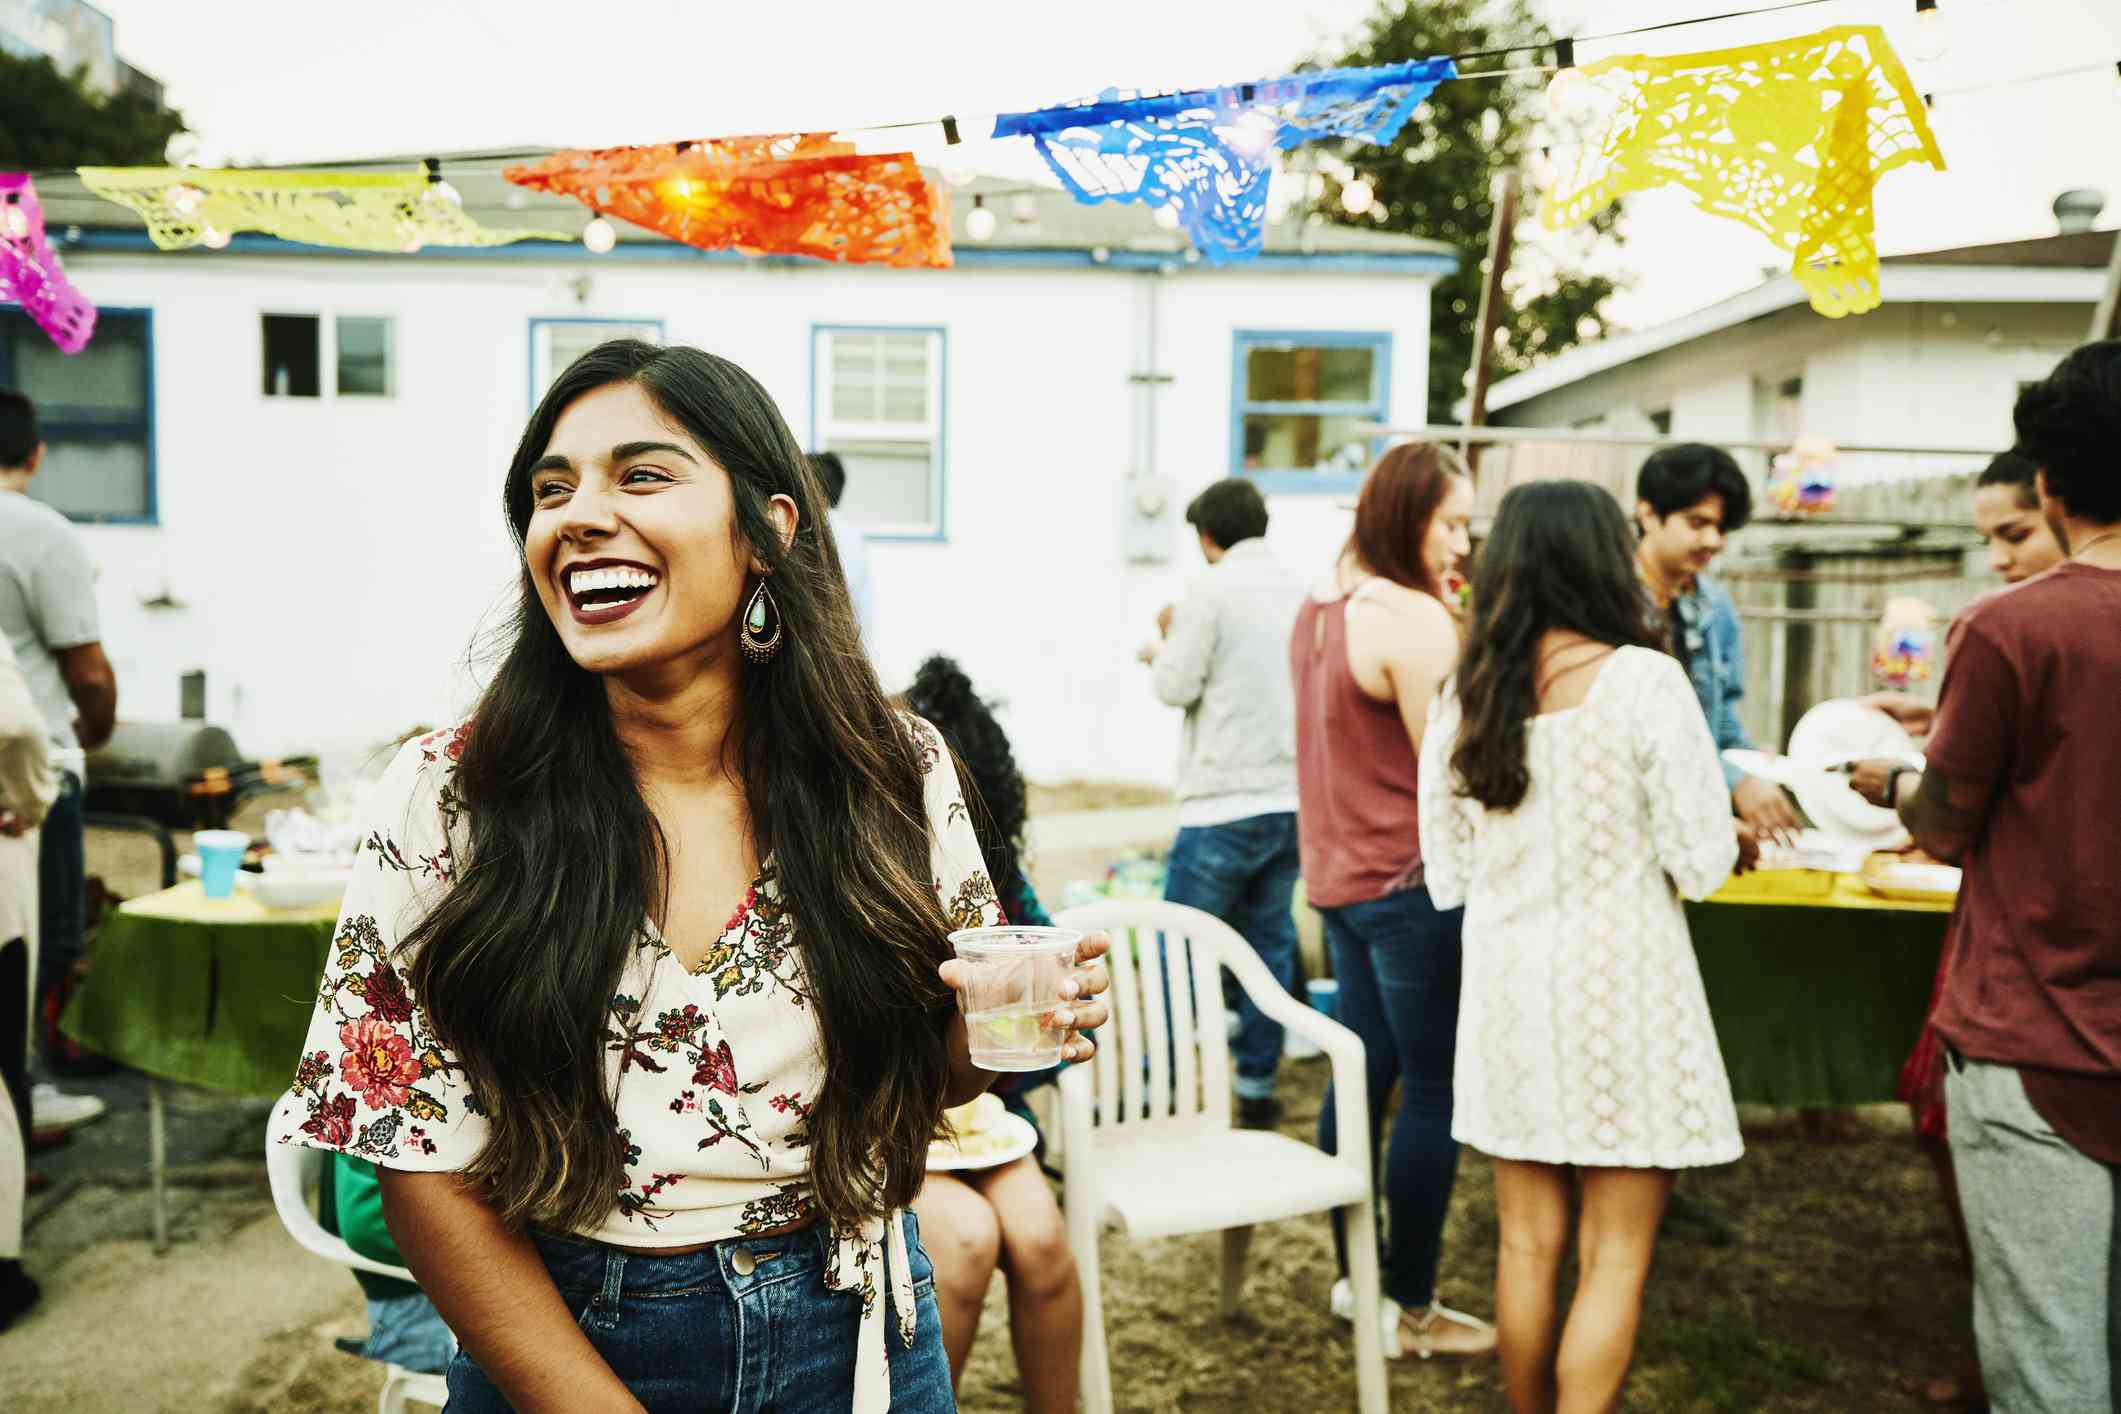 Smiling woman holds drink at backyard party